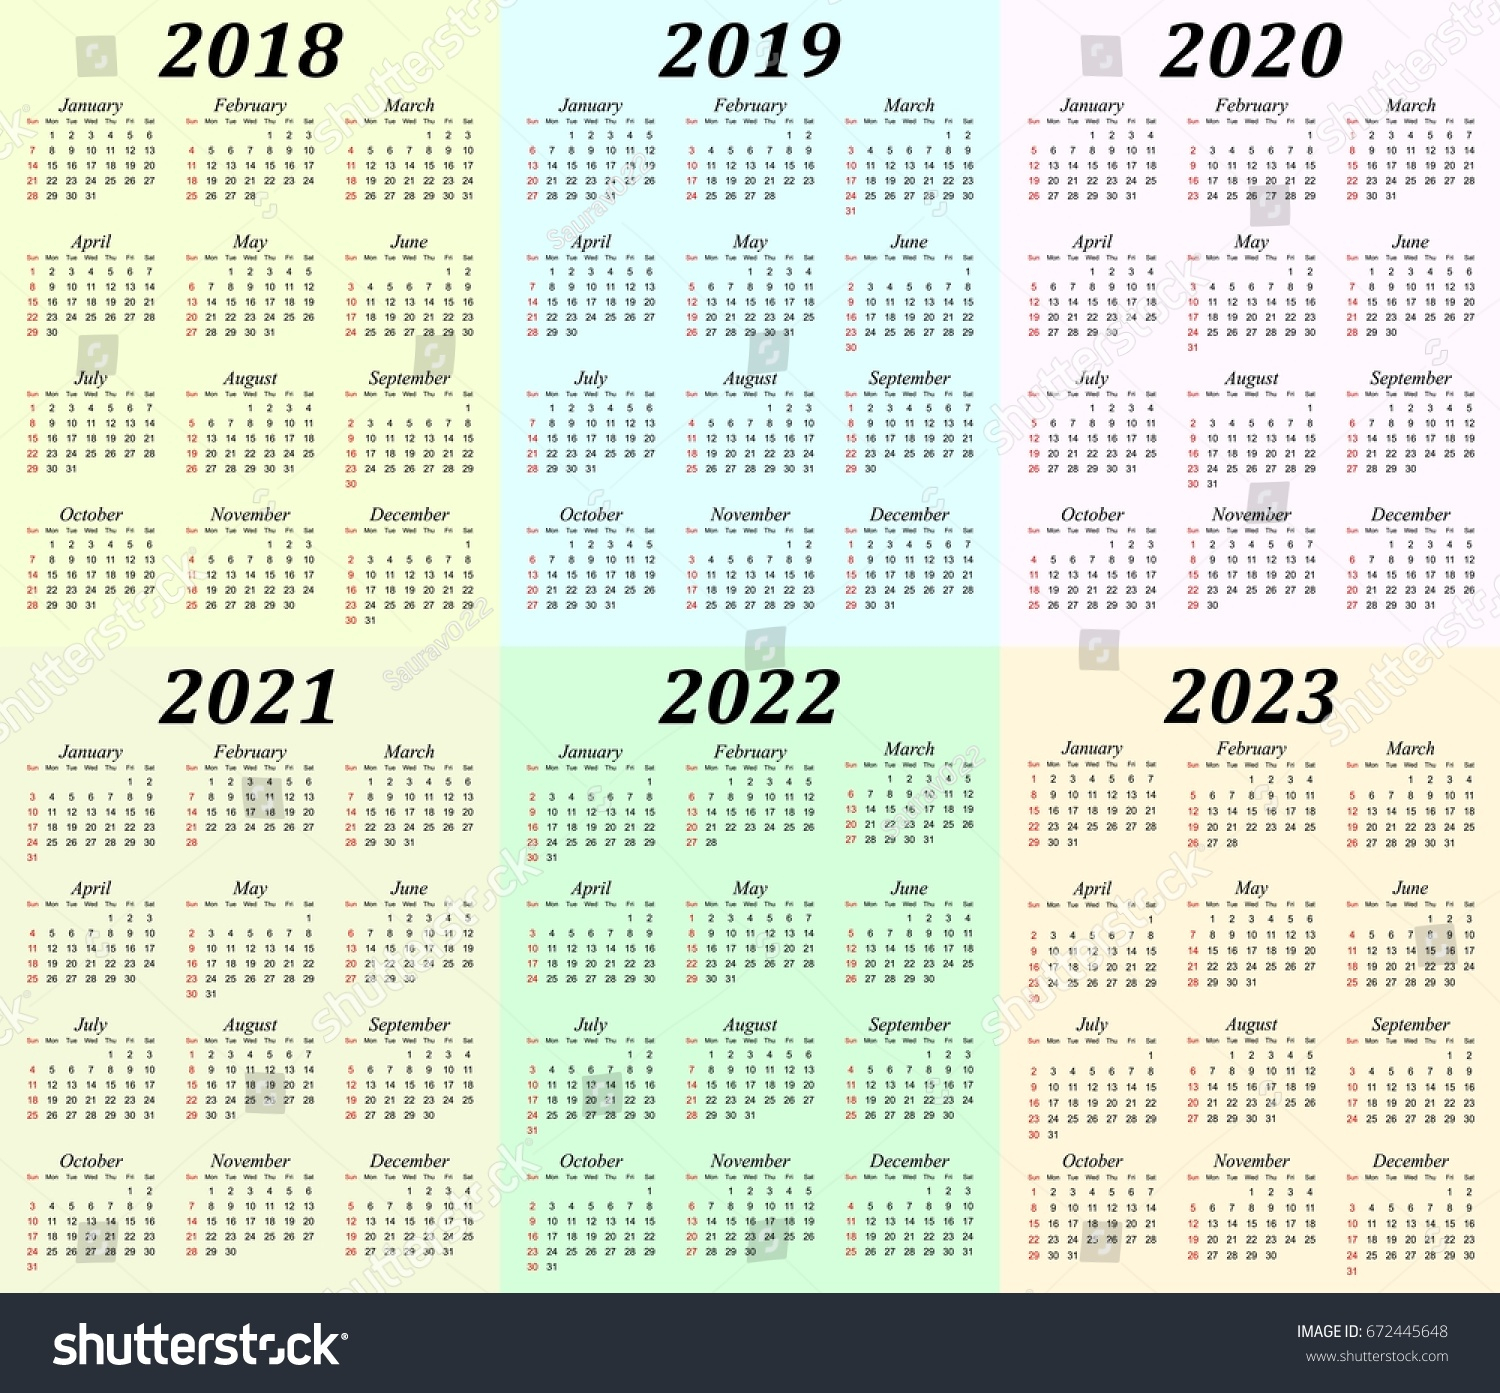 Six Year Calendar - 2018, 2019, 2020,… Stock Photo 672445648 intended for Print 2019 2020 2021 2022 2023 Calender